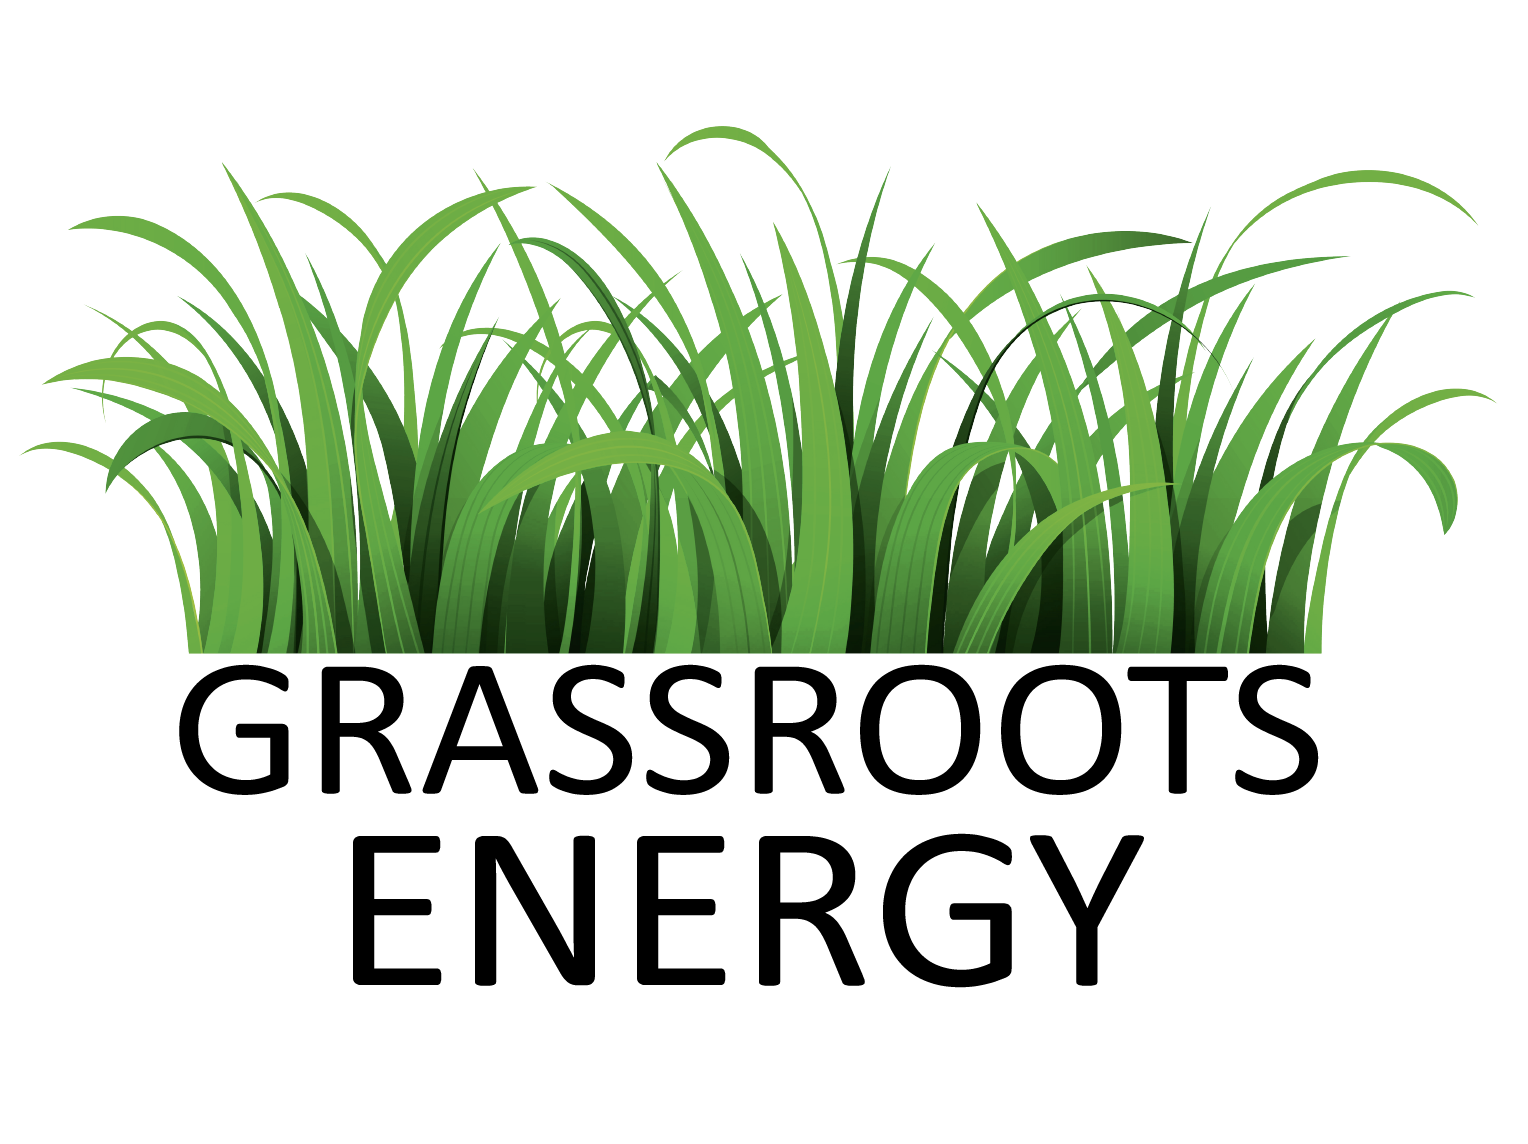 Grassroots Energy Inc.